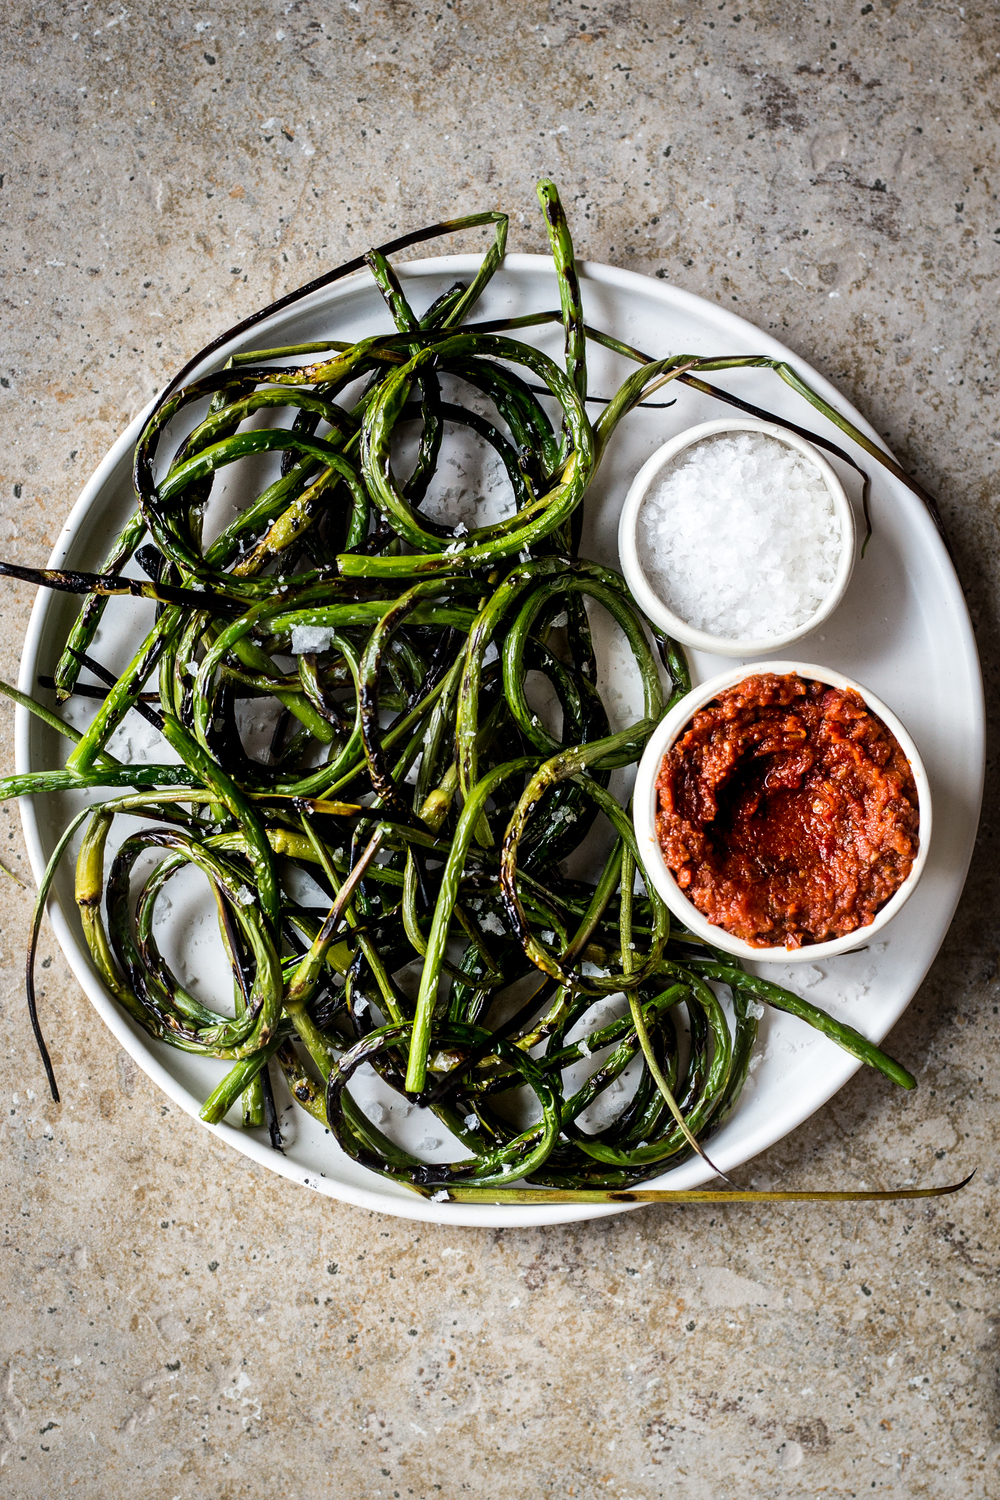 Grilled Garlic Scapes with Sun Dried Tomato Pesto and Sea Salt